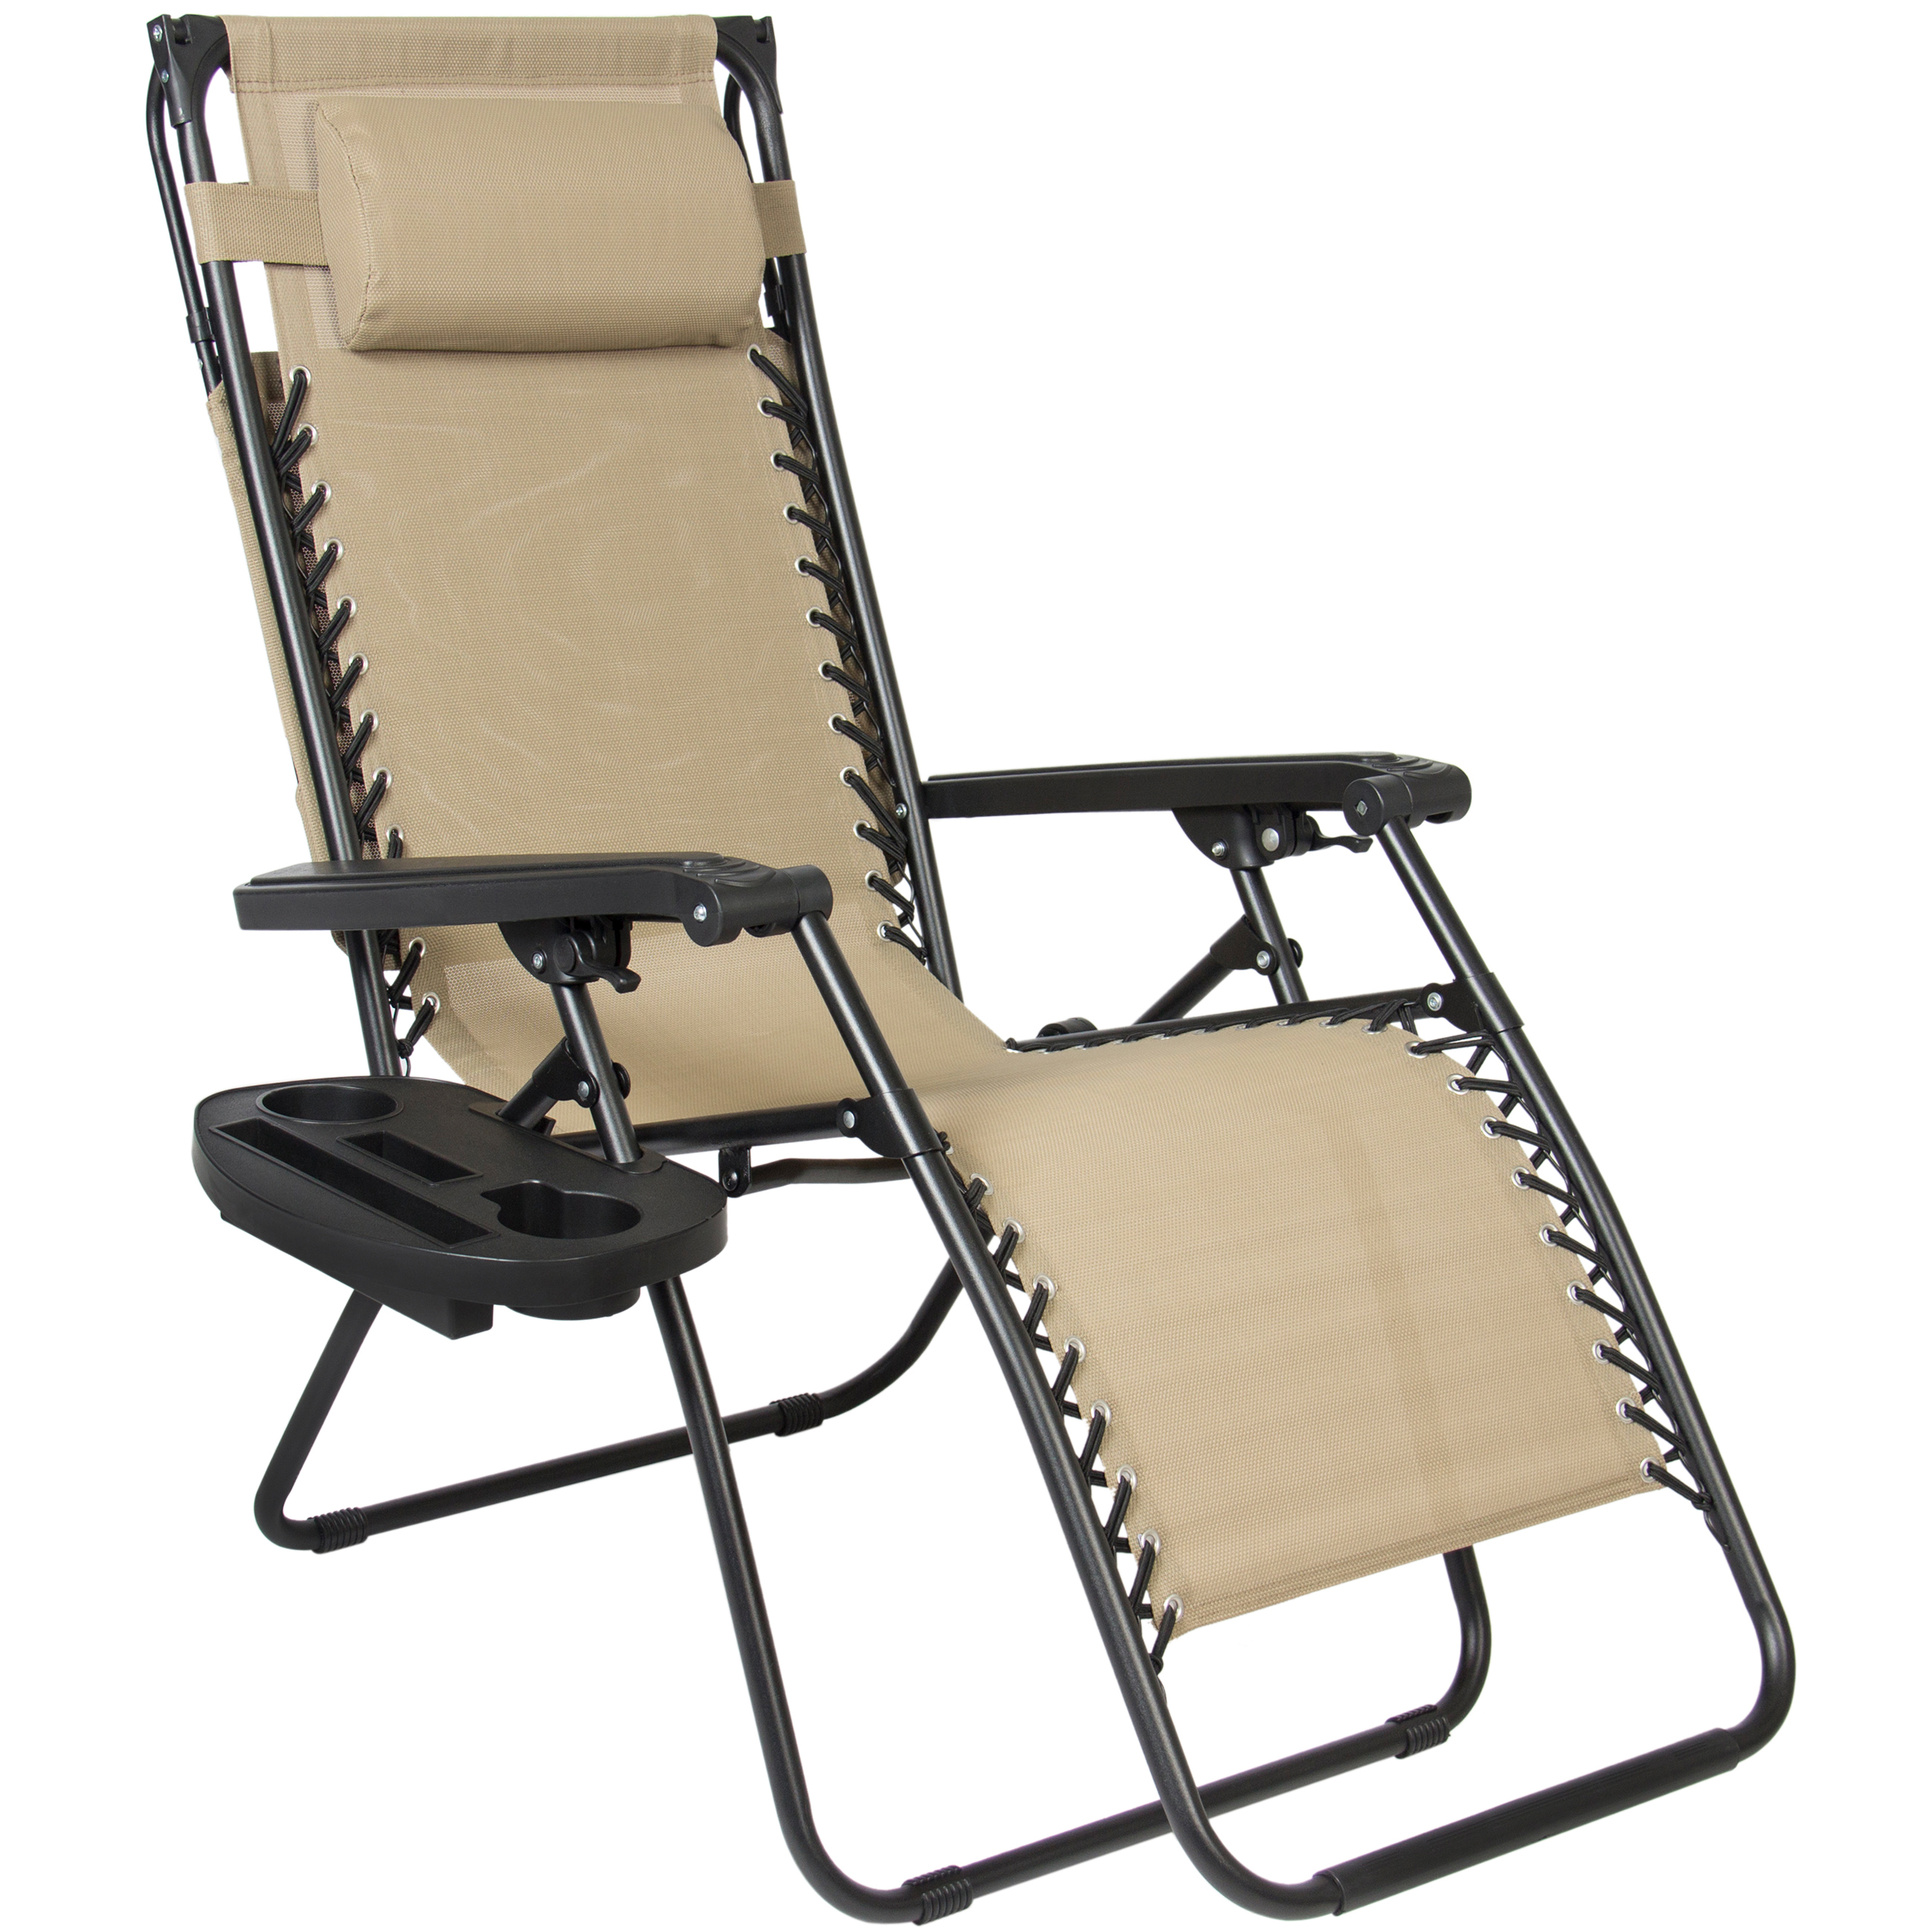 Outdoor anti gravity chair - Folding Zero Gravity Recliner Lounge Chair With Canopy Shade Magazine Cup Holder Walmart Com